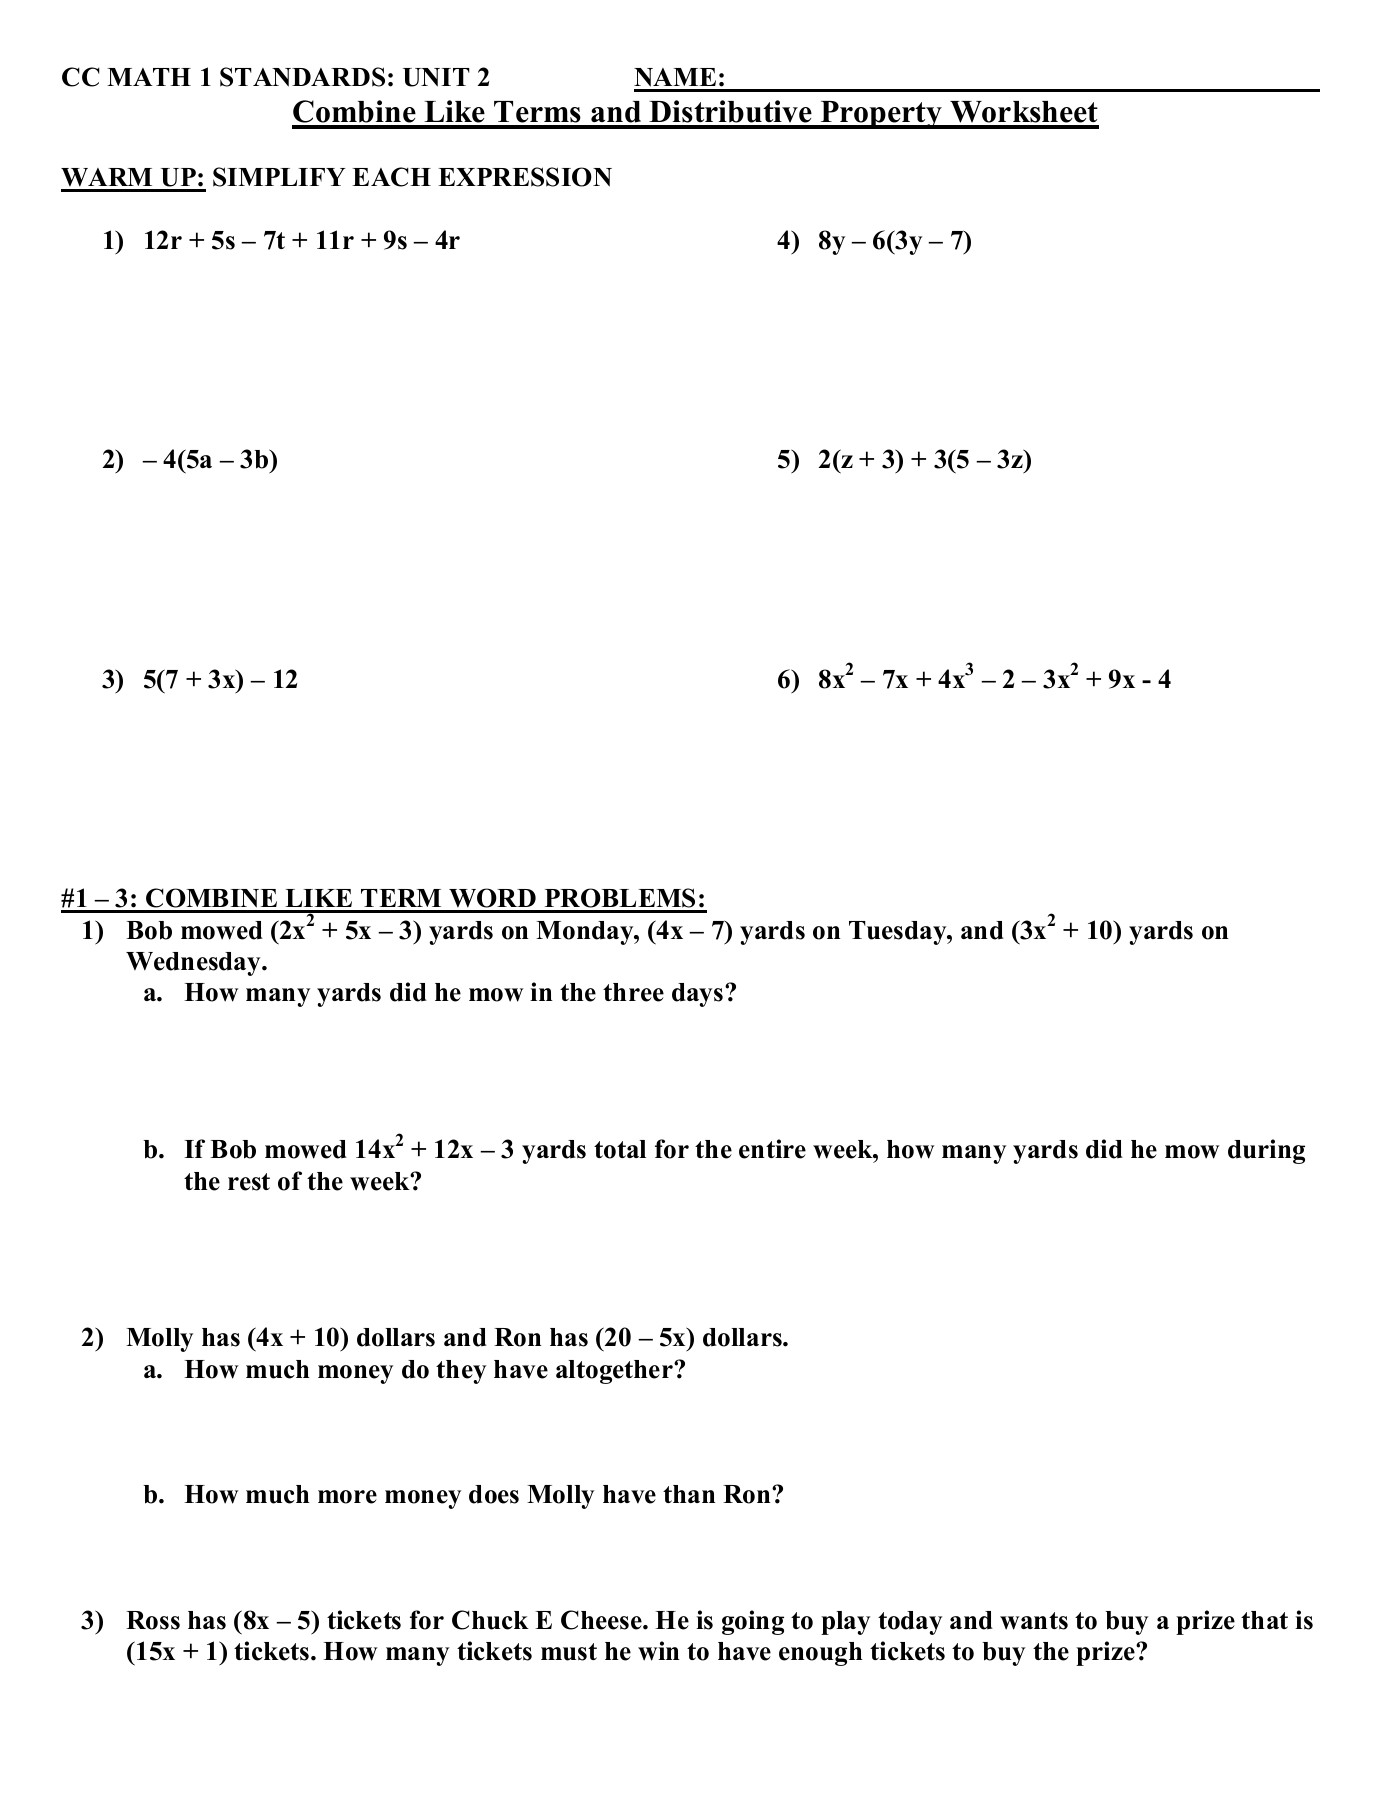 Combining Like Terms And Distributive Property Worksheet